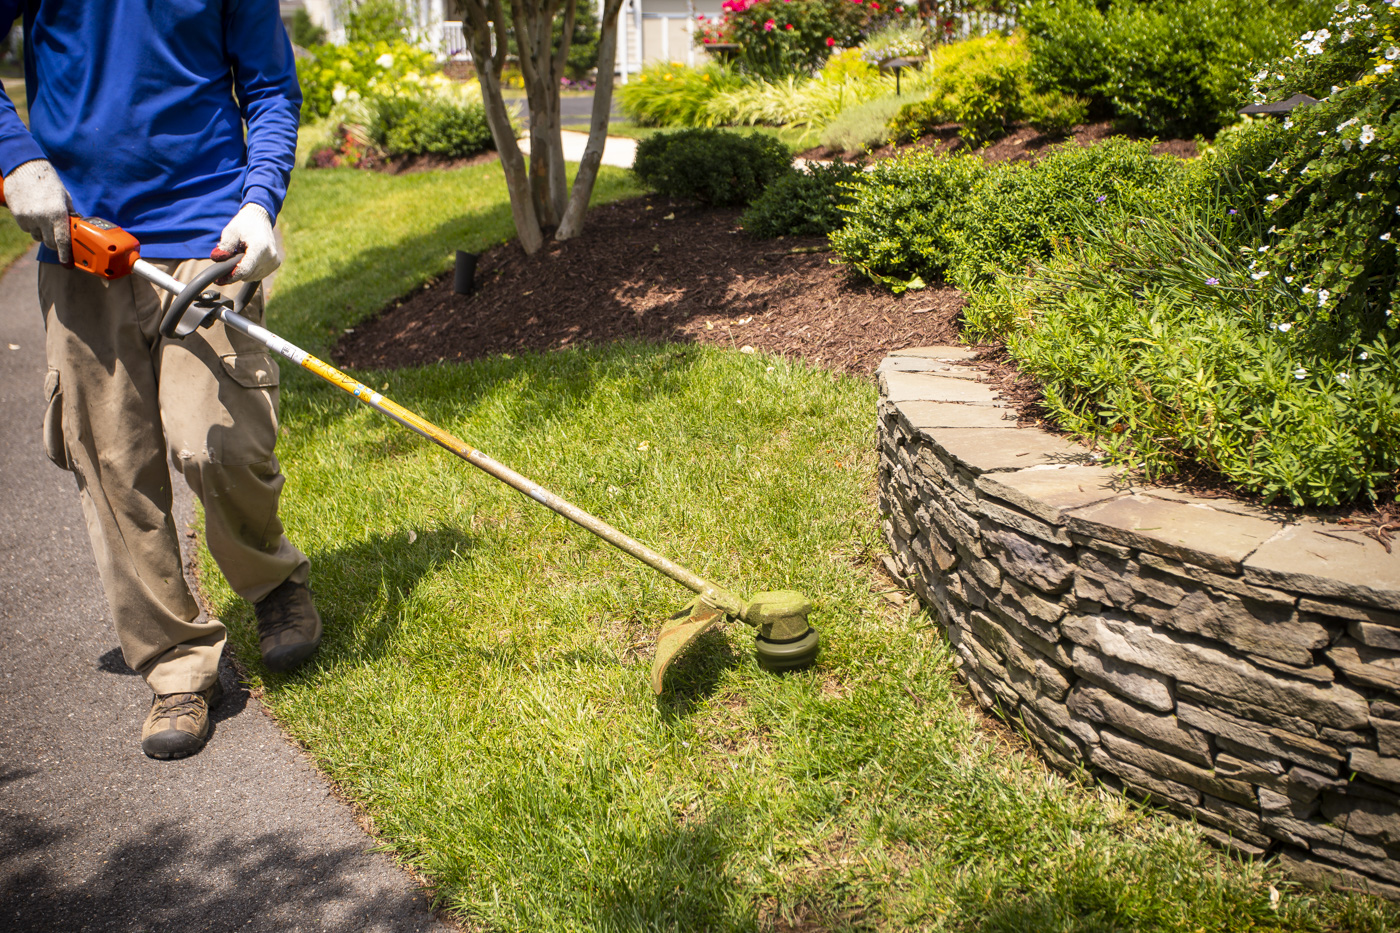 How to Compare Lawn Care Services, Prices, & Programs in South Riding, VA